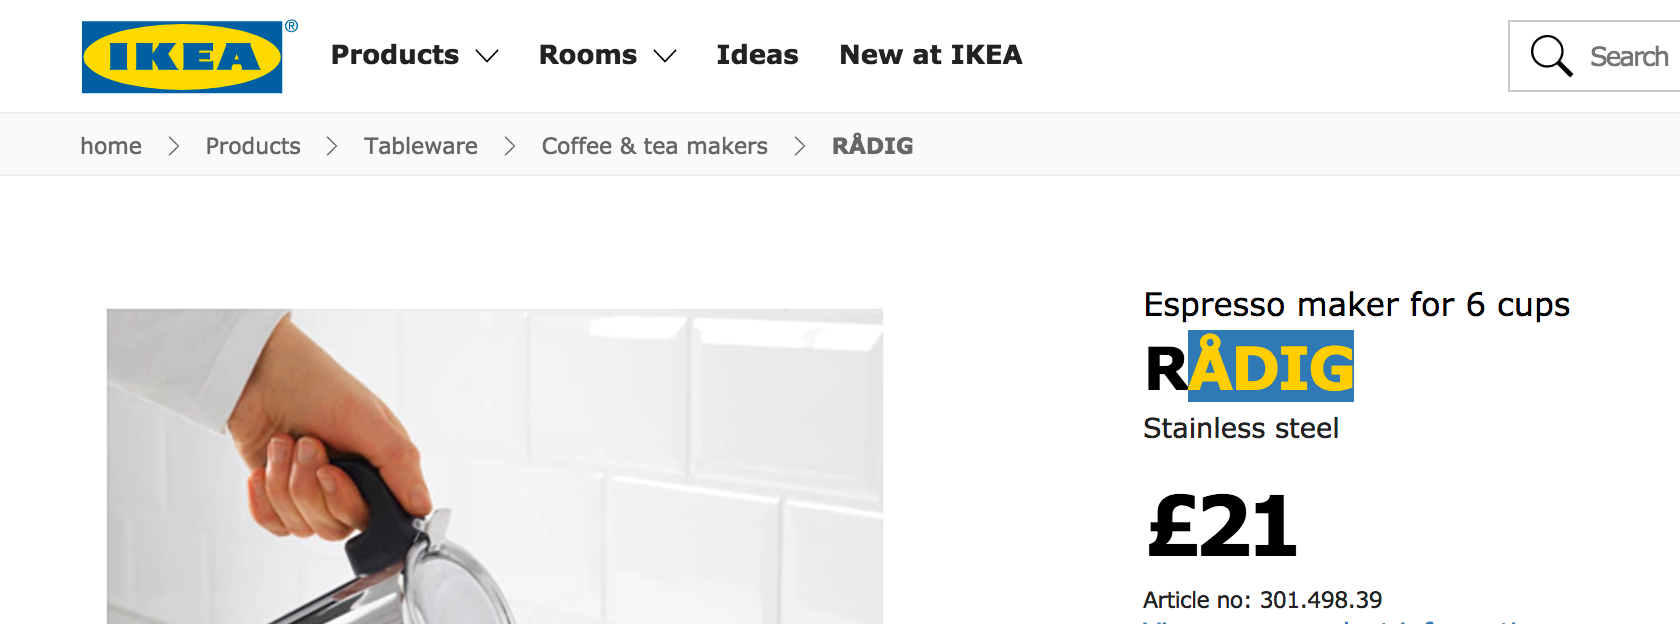 IKEA's highlighted text